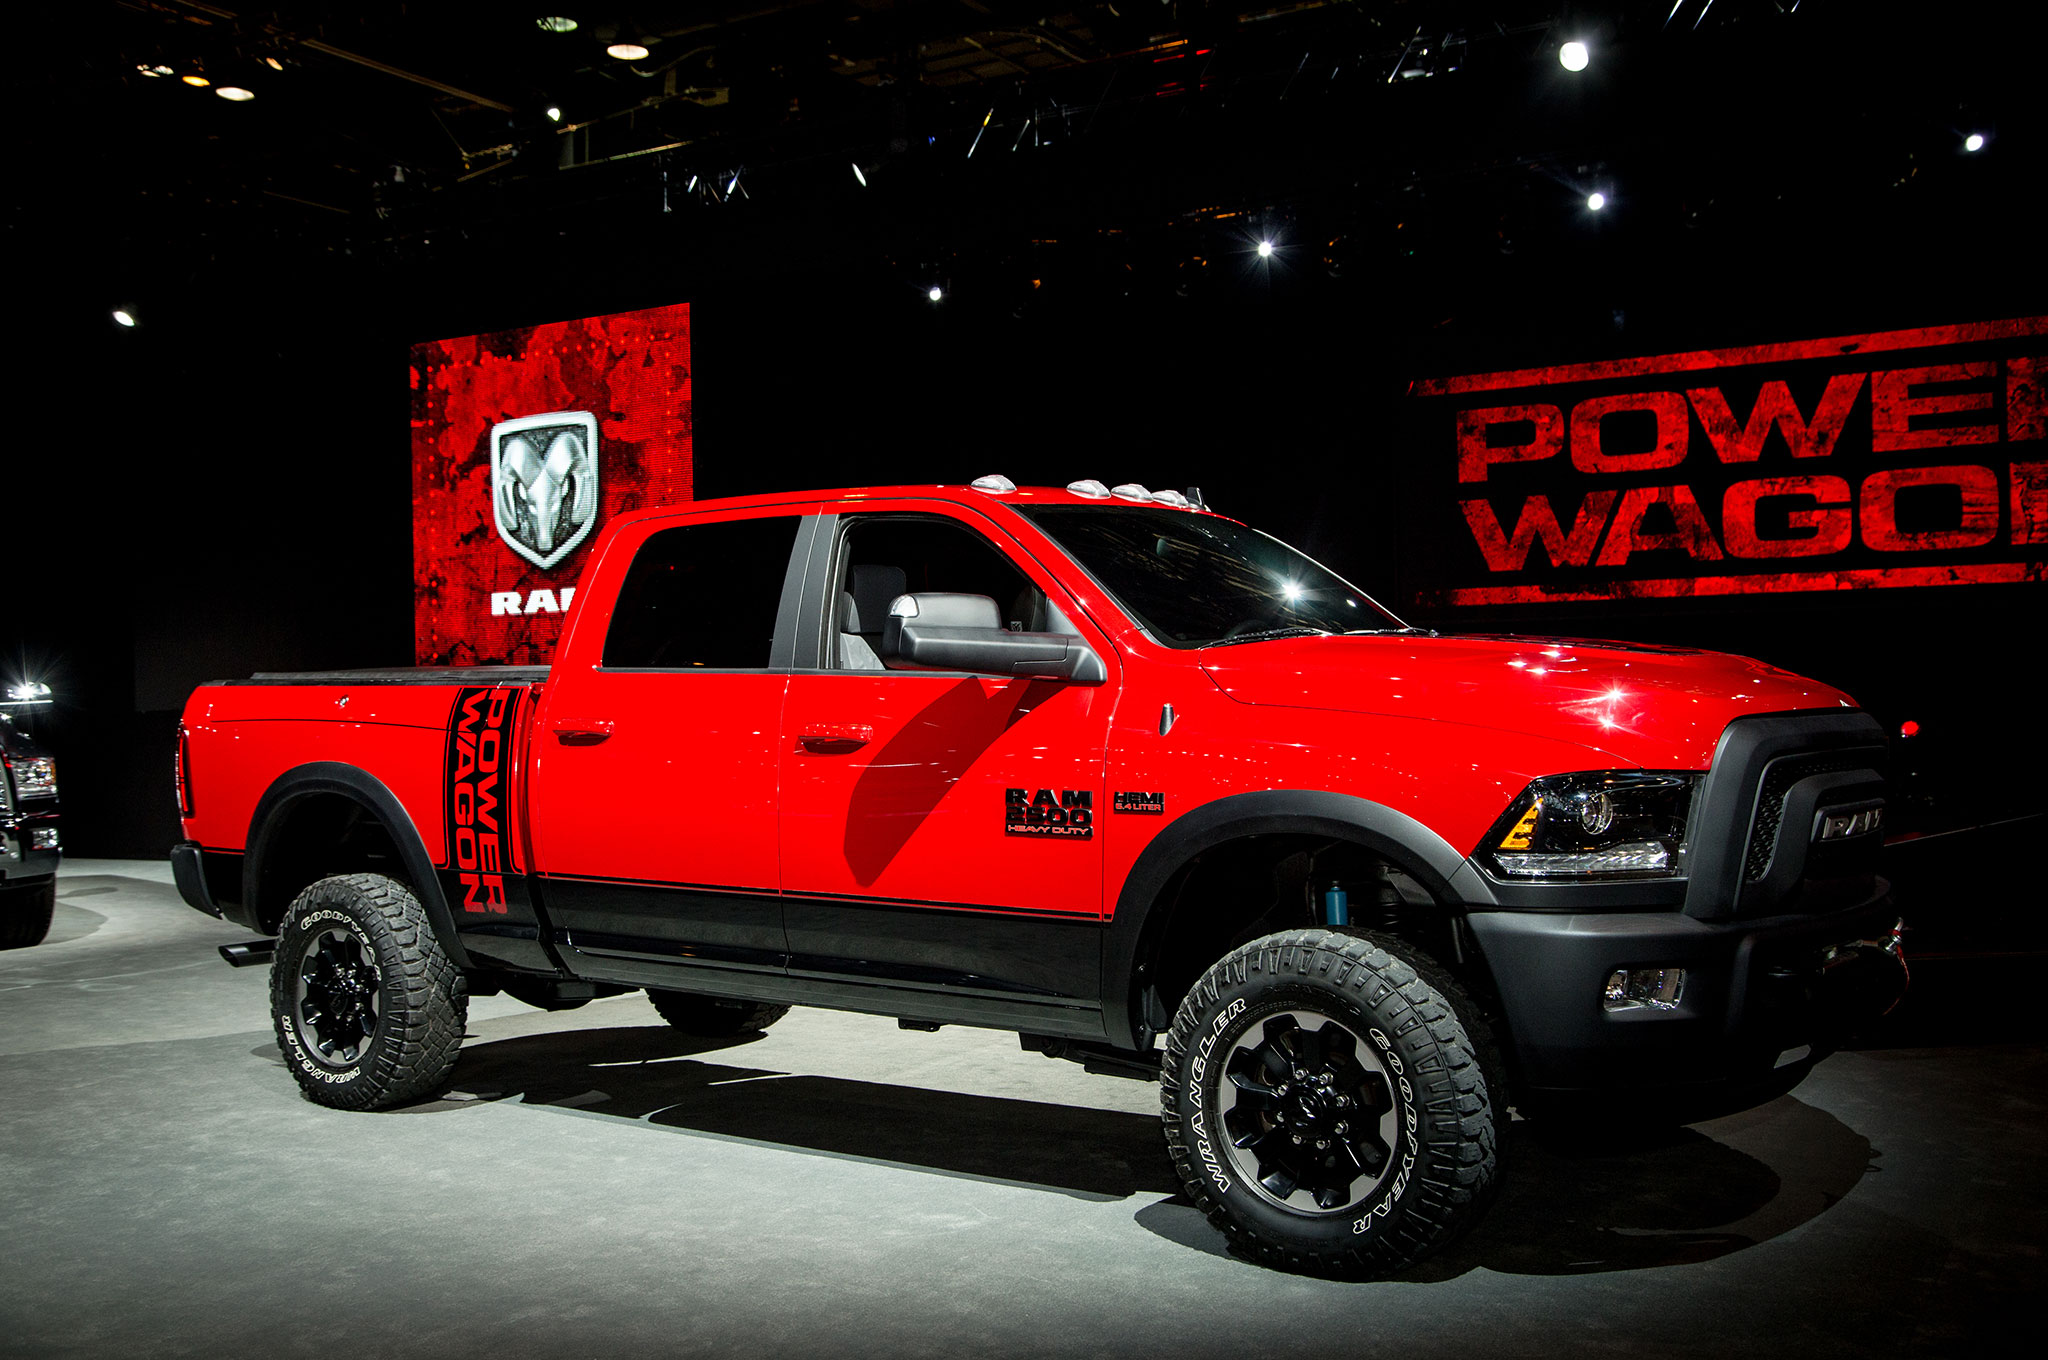 Ram Power Wagon 2017 Primer Vistazo